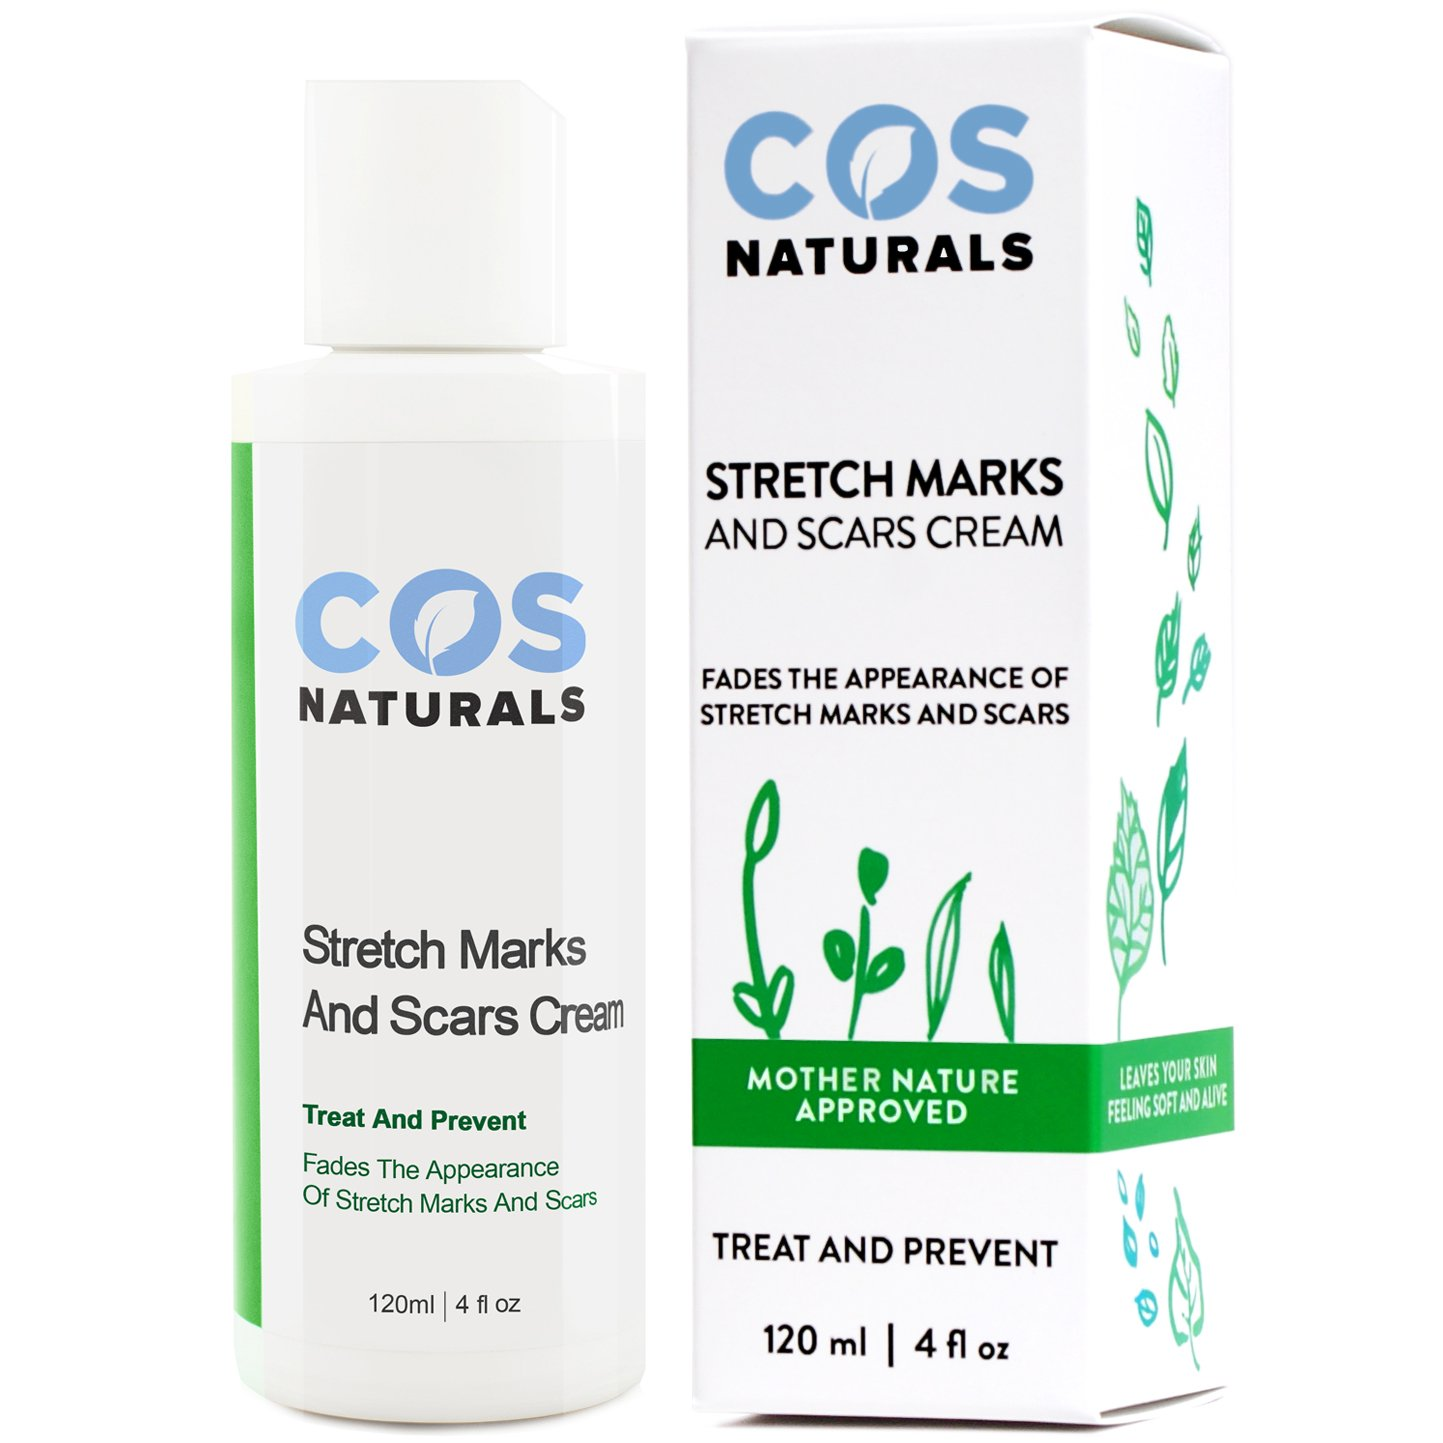 COSNATURALS SKIN CARE COS Naturals ANTI STRETCH MARK AND SCAR CREAM Natural Organic TREAT & PREVENT Body Moisturizer With Peptides Vitamin C B E Hyaluronic Acid Best For Pregnancy 4 Oz. COS-STR